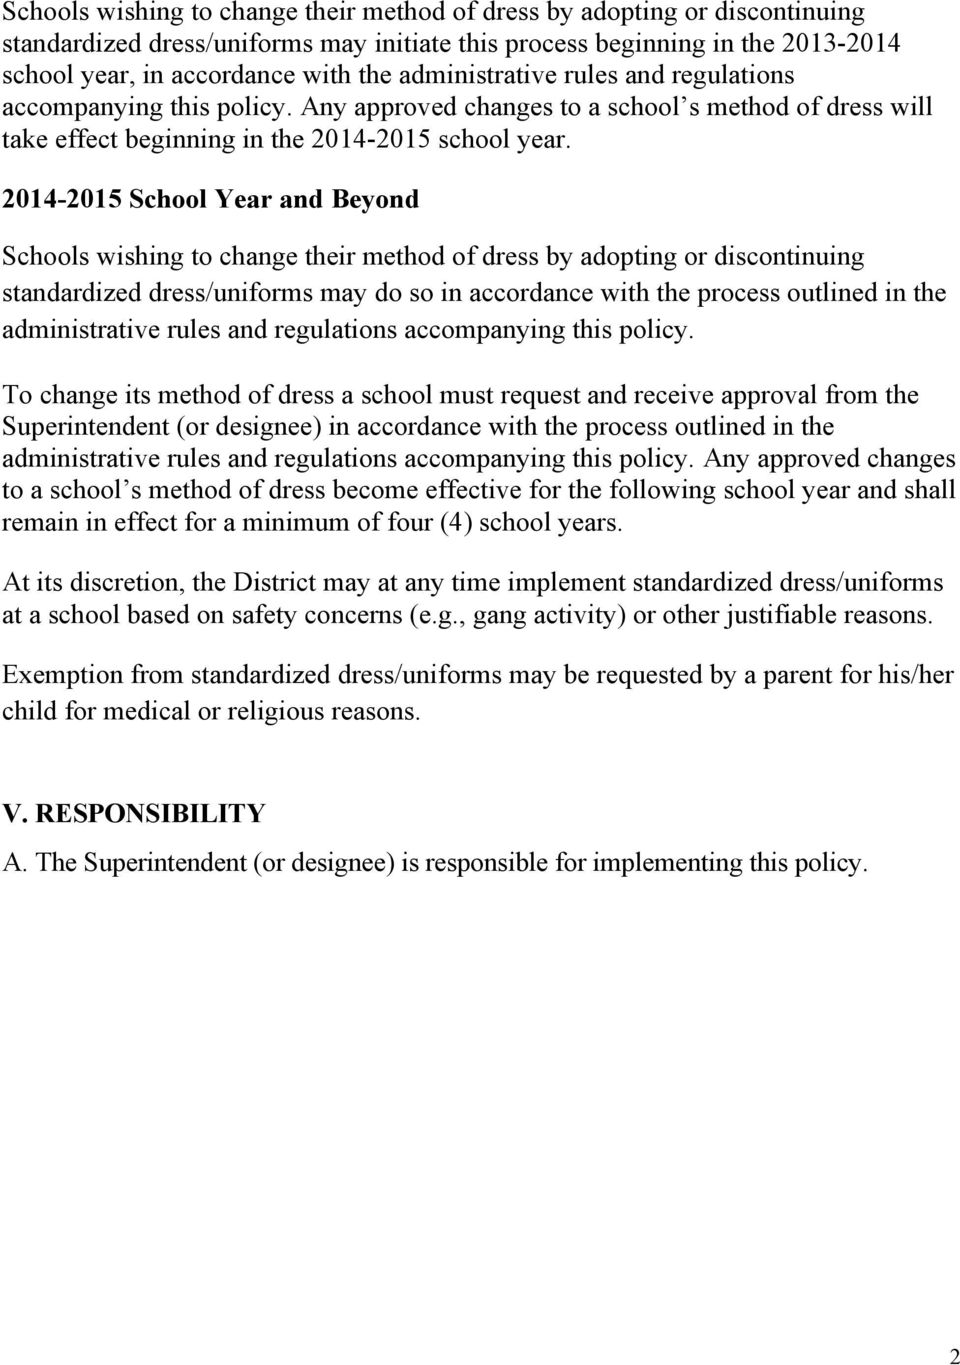 2014-2015 School Year and Beyond Schools wishing to change their method of dress by adopting or discontinuing standardized dress/uniforms may do so in accordance with the process outlined in the